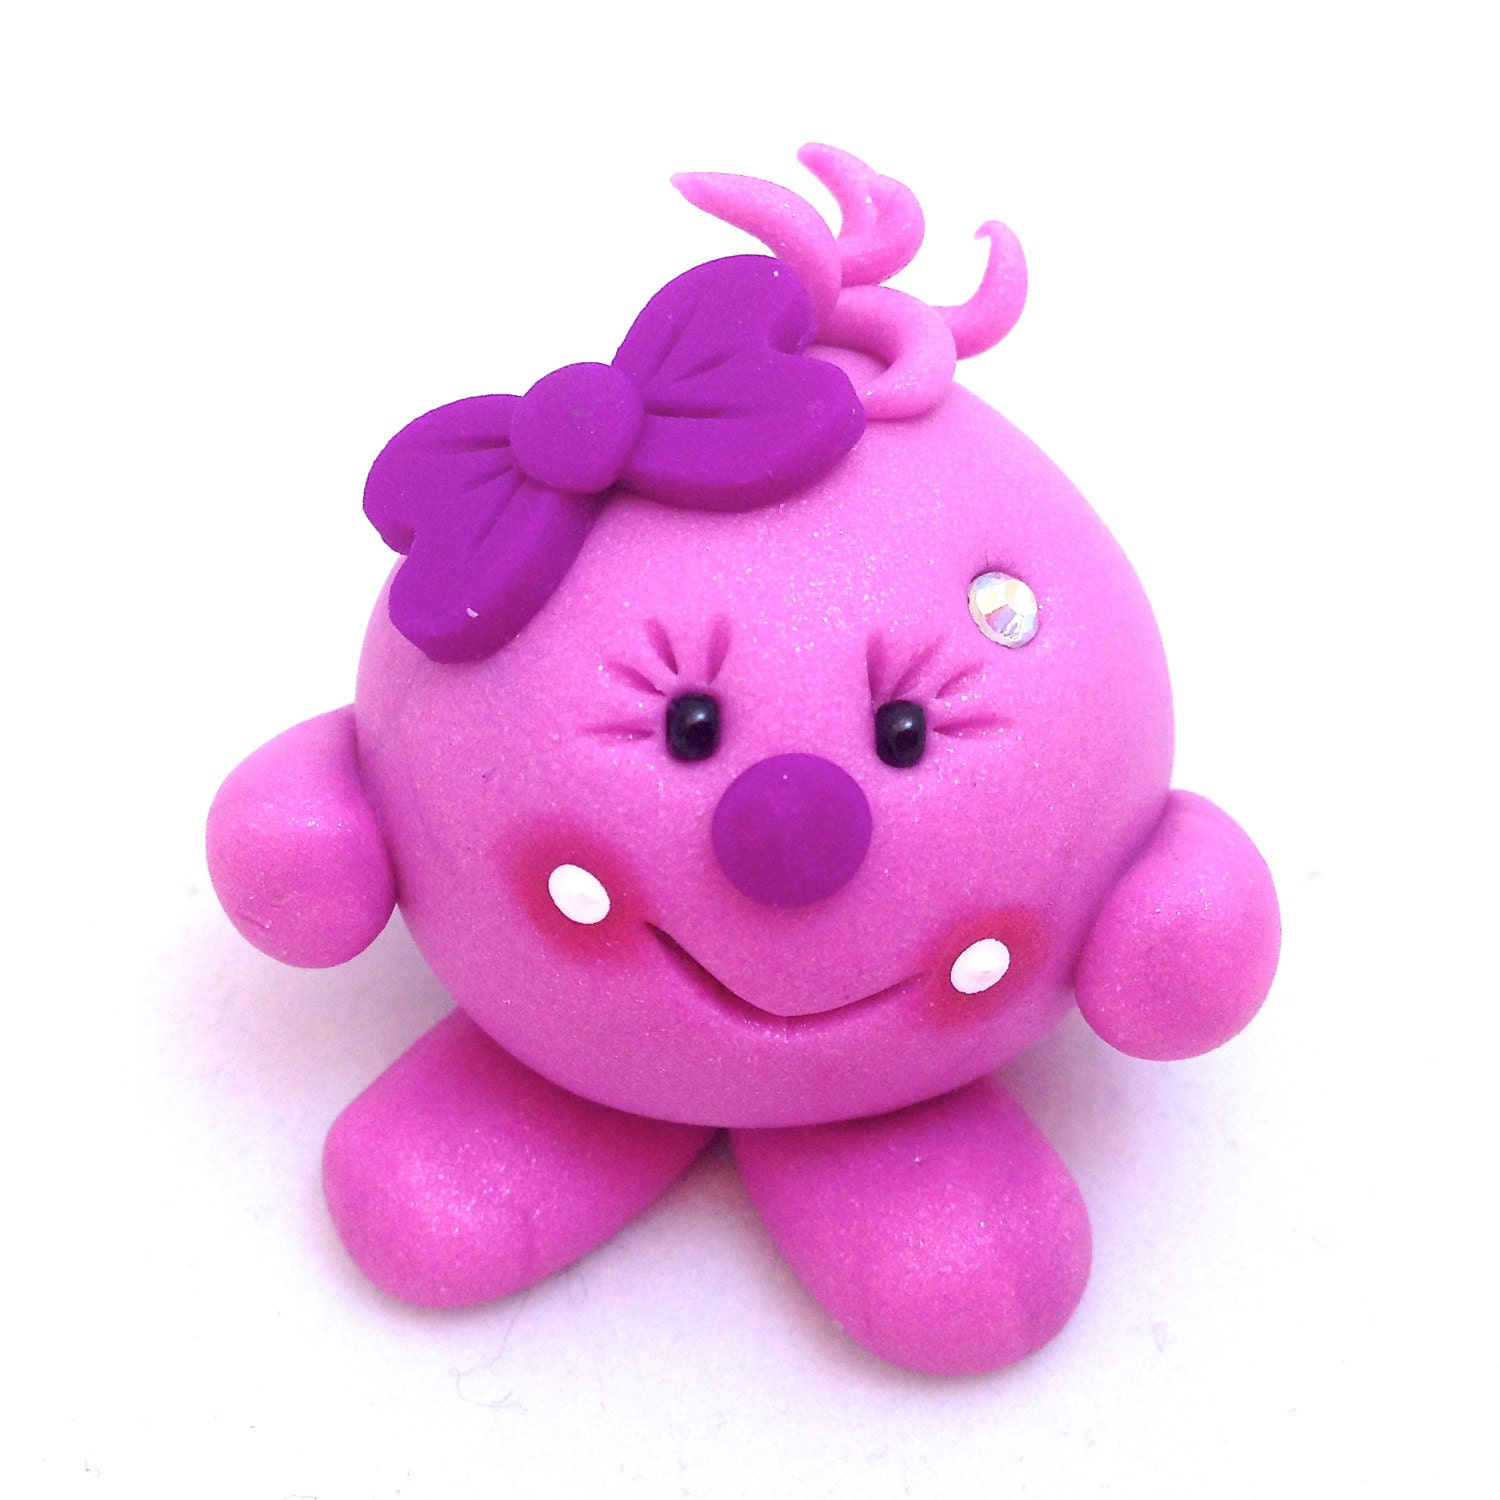 Lolly Polymer Clay Figurine from KatersAcres